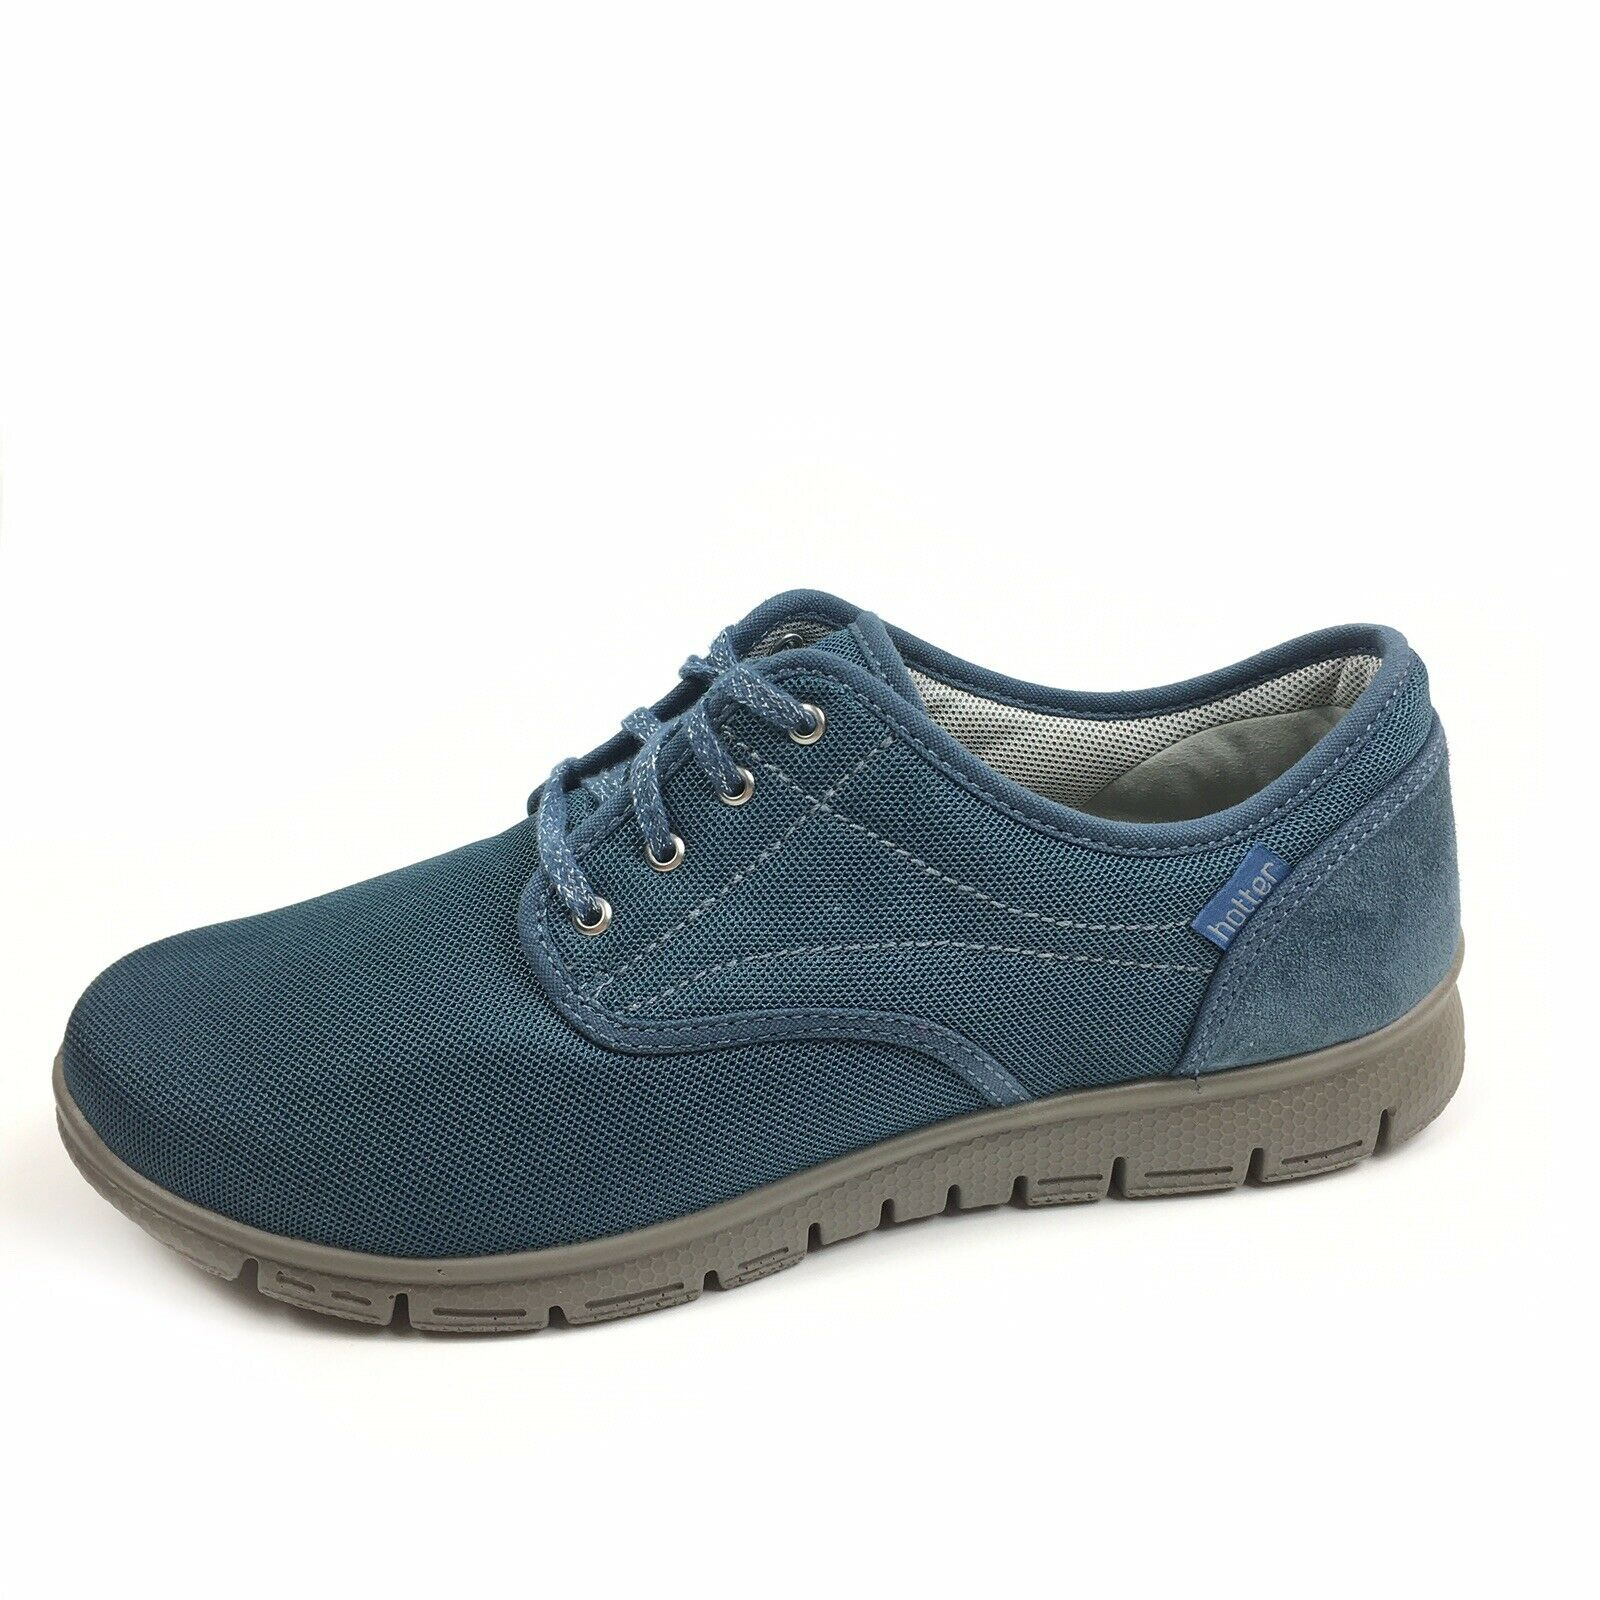 Hotter Women's bluee Mesh Suede Lace Up Comfort Sneakers Size 9.5